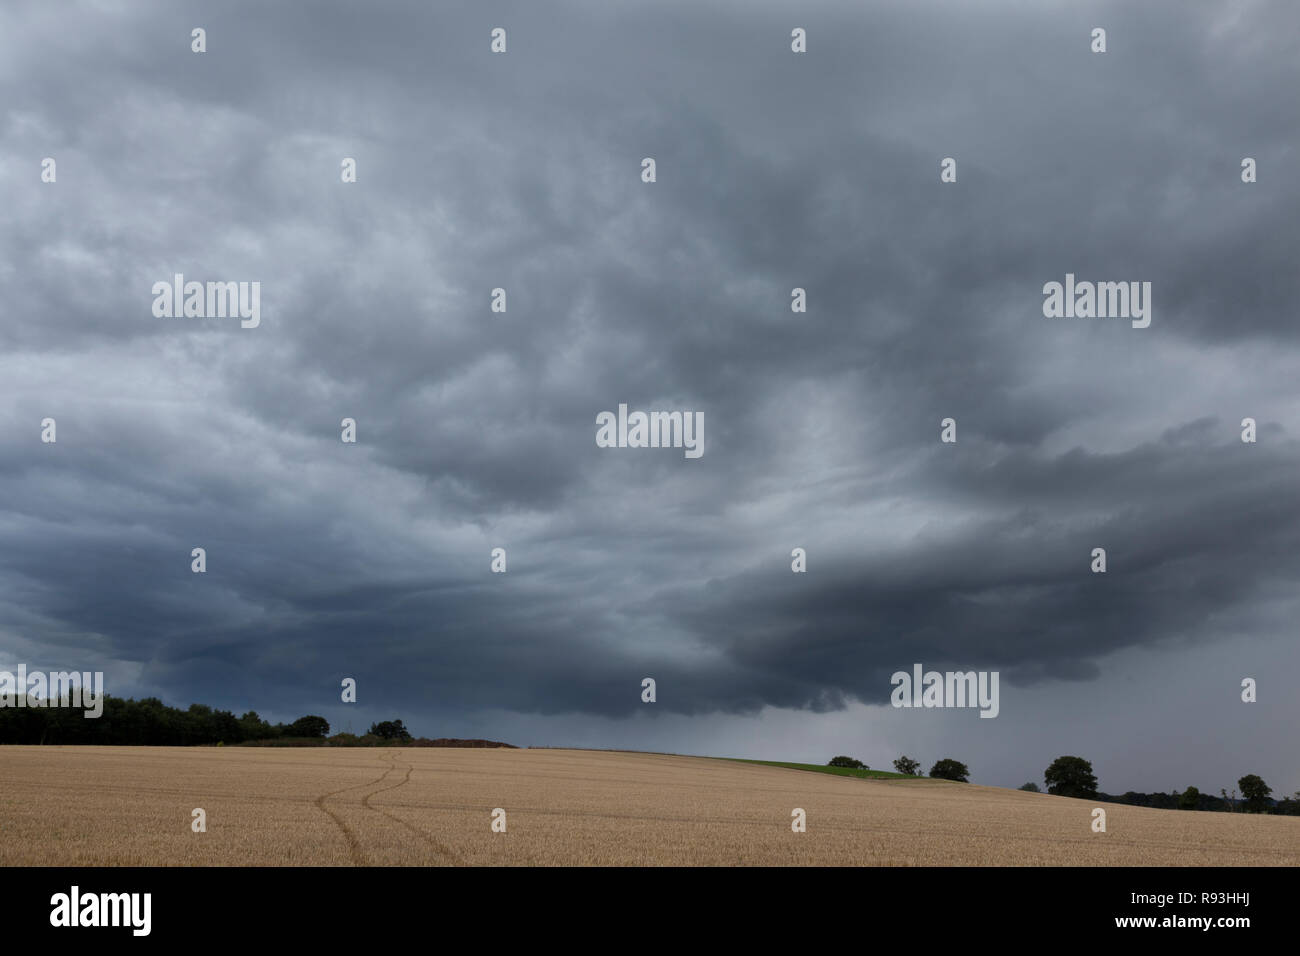 An approaching storm with threatening rain clouds - Stock Image